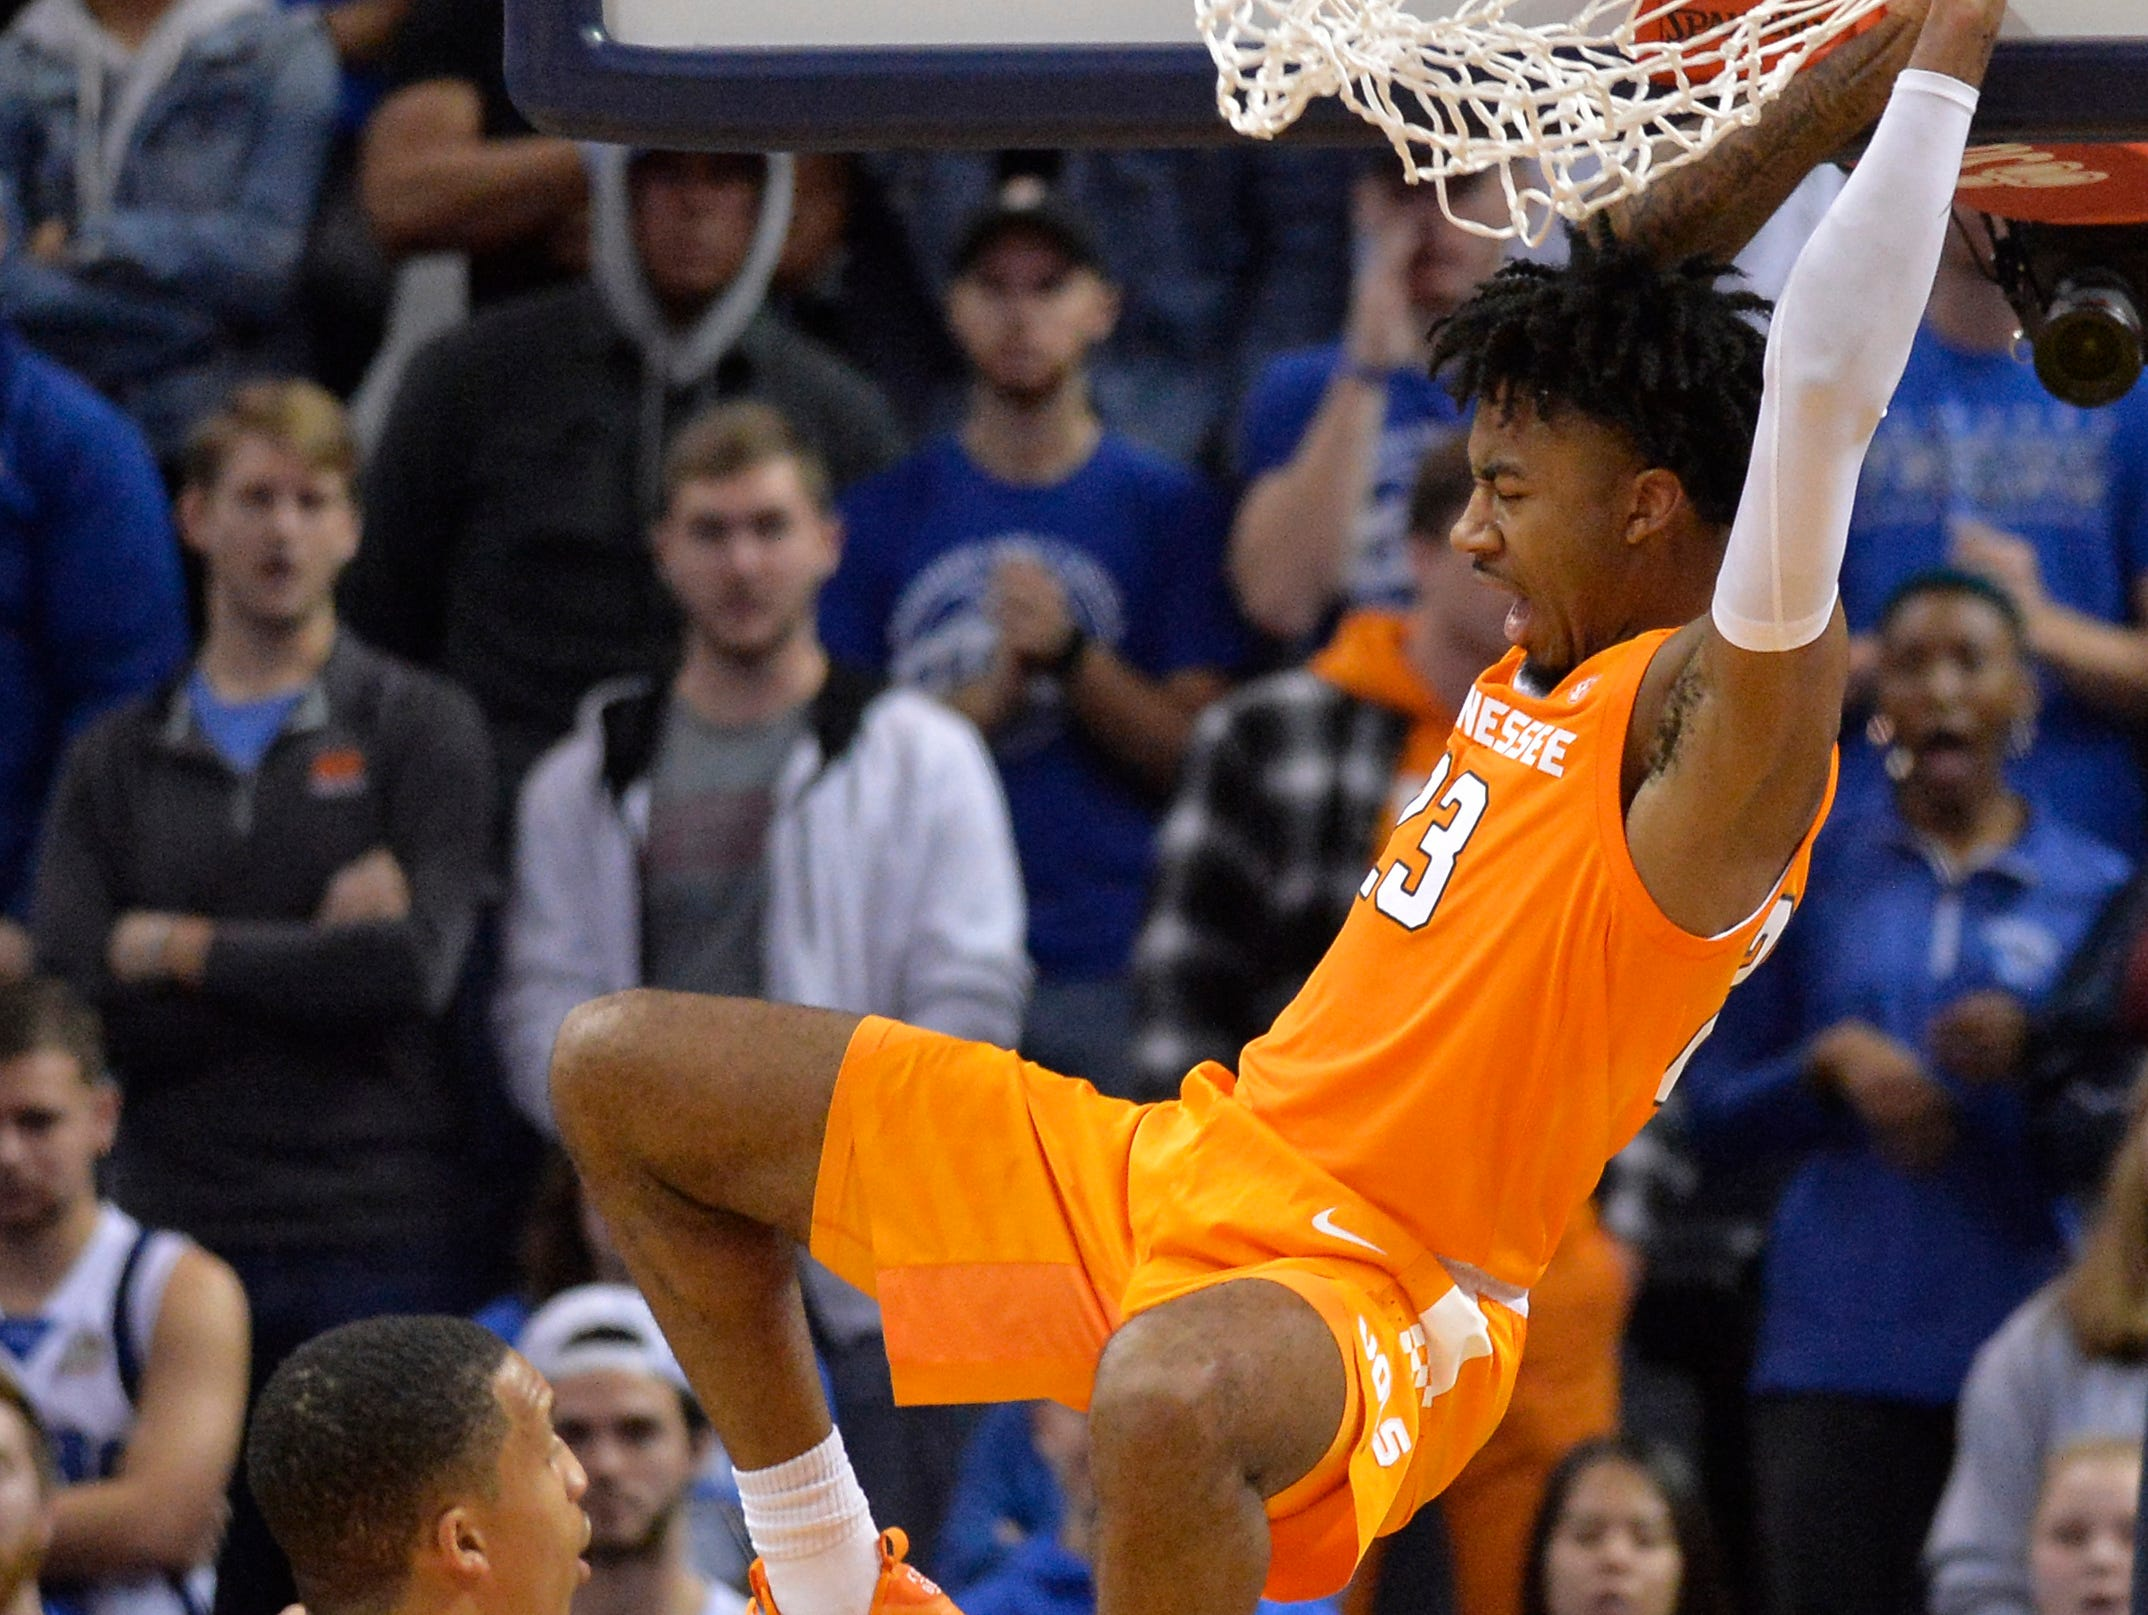 Tennessee guard Jordan Bowden (23) hangs from the rim after dunking the ball in the first half of an NCAA college basketball game against Memphis Saturday, Dec. 15, 2018, in Memphis, Tenn.